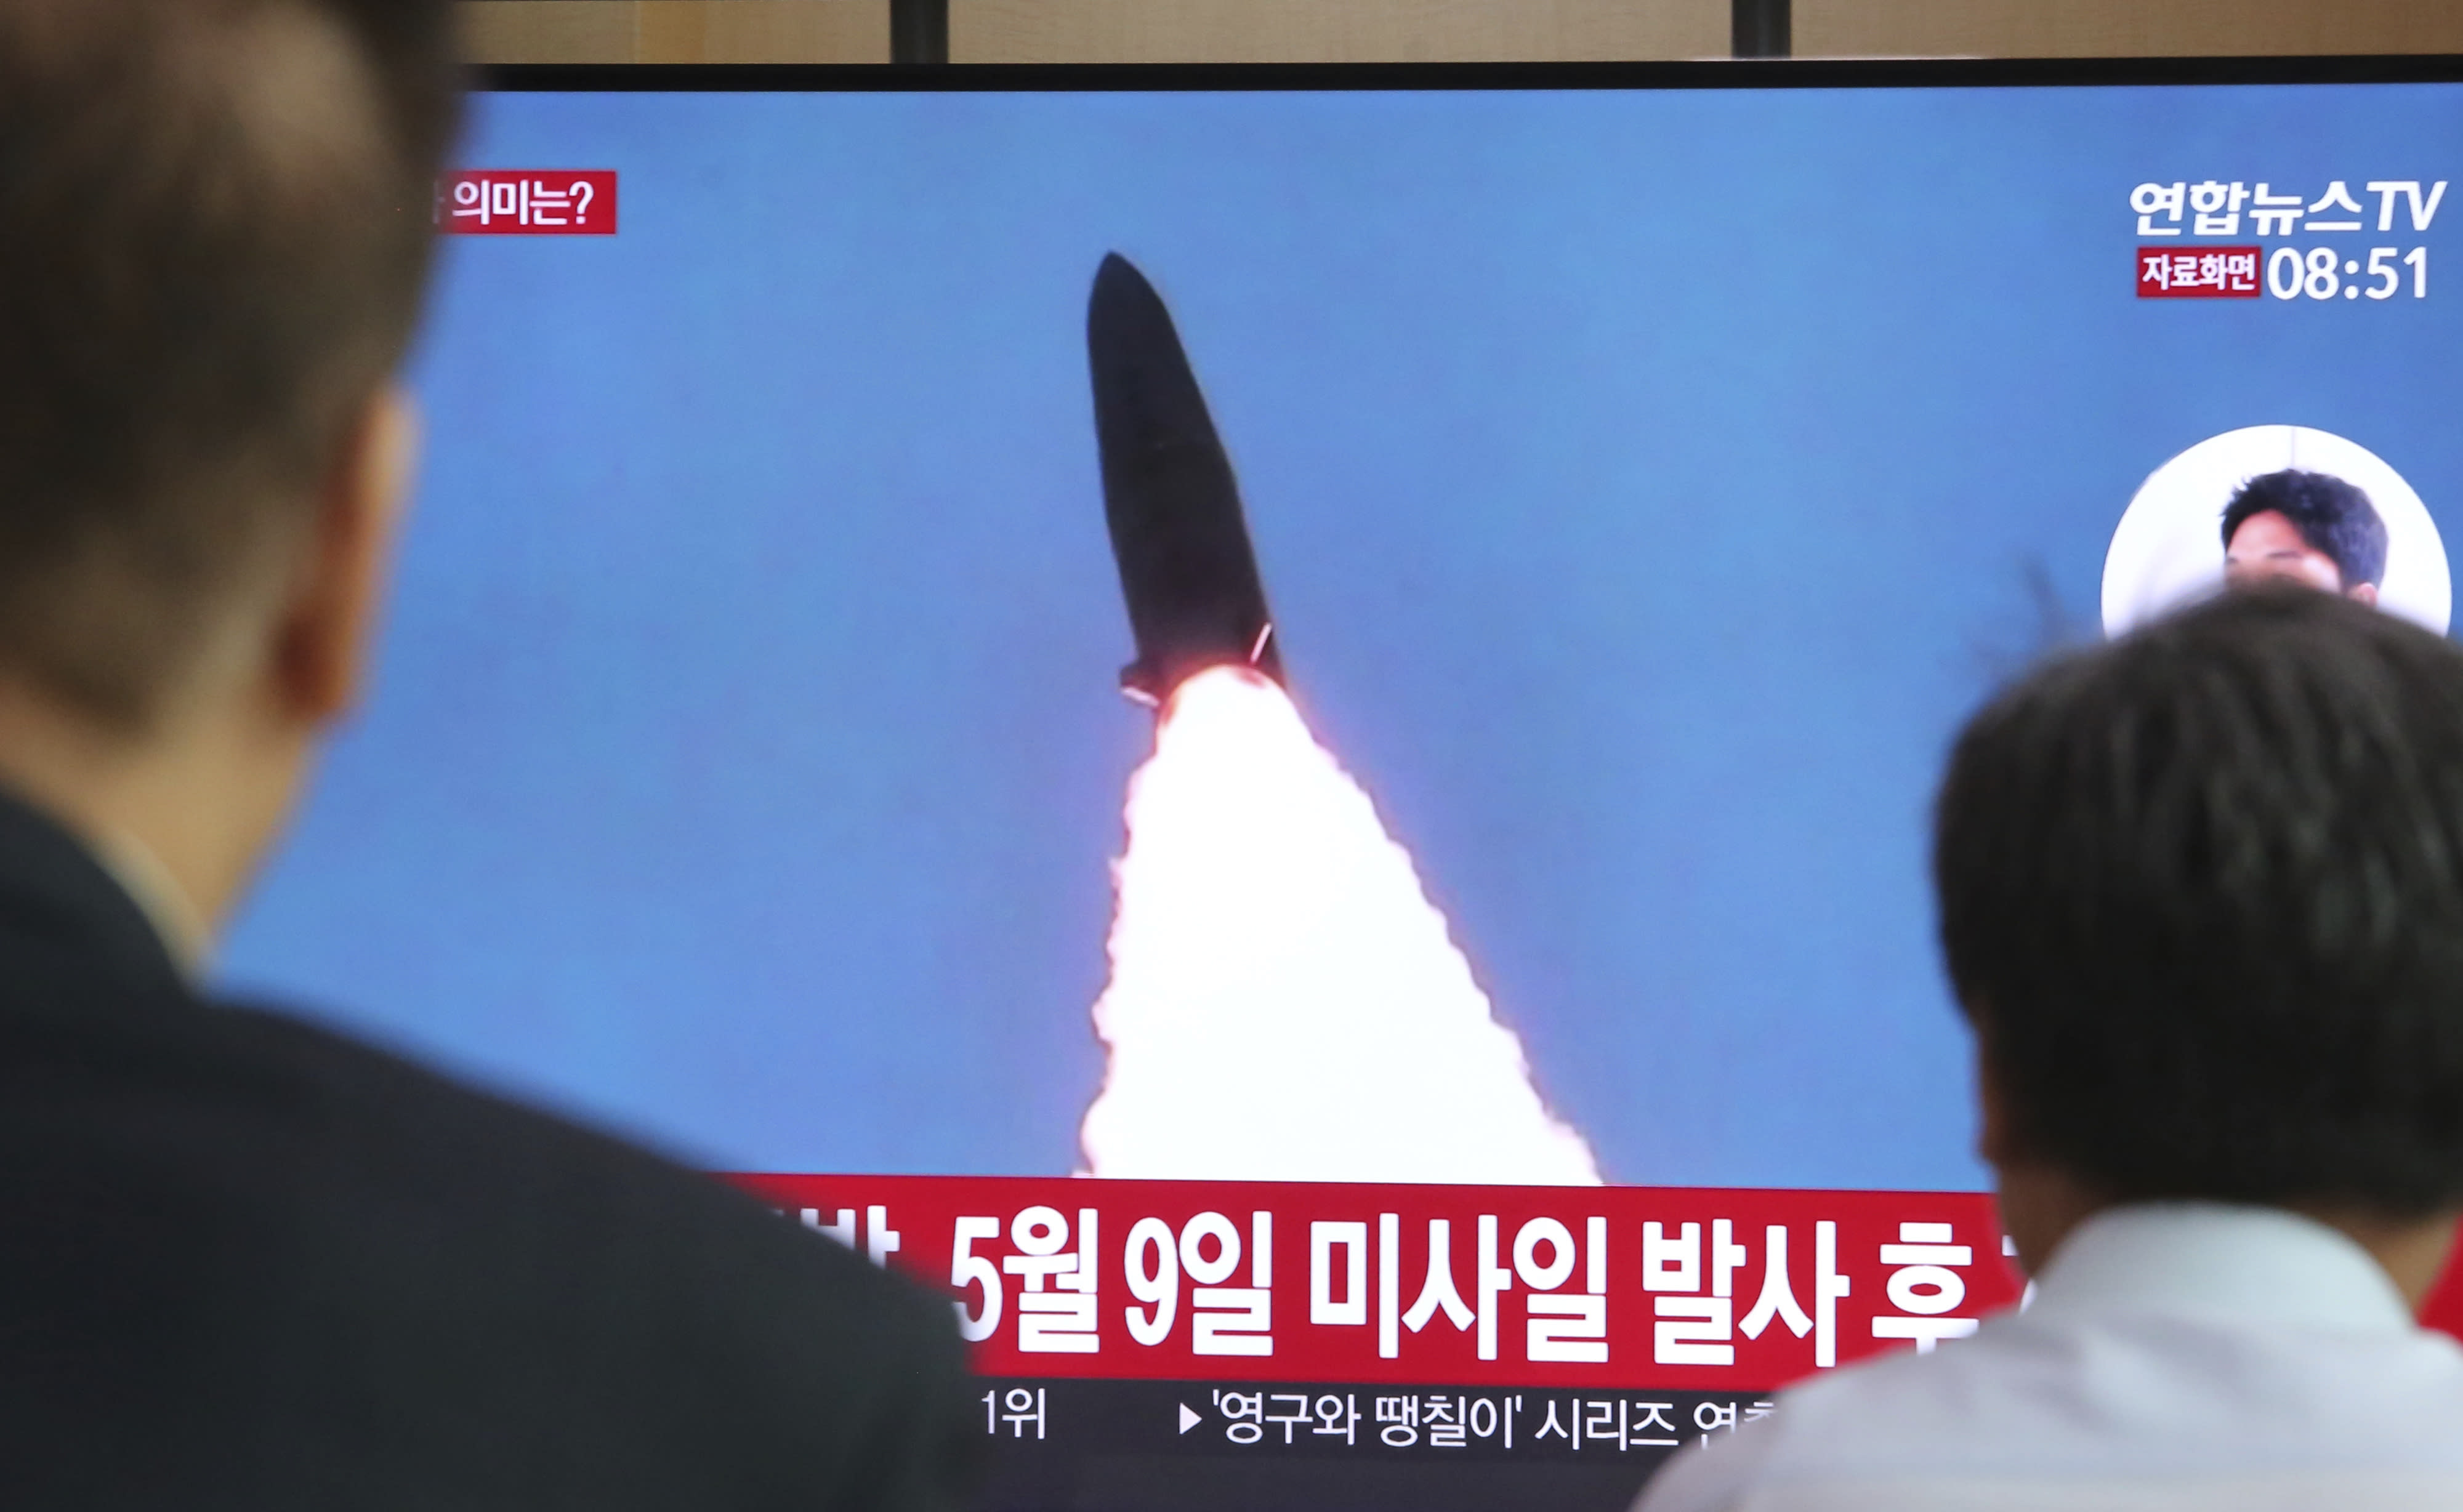 """People watch a TV showing a file image of North Korea's missile launch during a news program at the Seoul Railway Station in Seoul, South Korea, Thursday, July 25, 2019. North Korea fired two unidentified projectiles into the sea on Thursday, South Korea's military said, the first launches in more than two months as North Korean and U.S. officials work to restart nuclear diplomacy. The signs read: """"North Korea fired after May 9."""" (AP Photo/Ahn Young-joon)"""